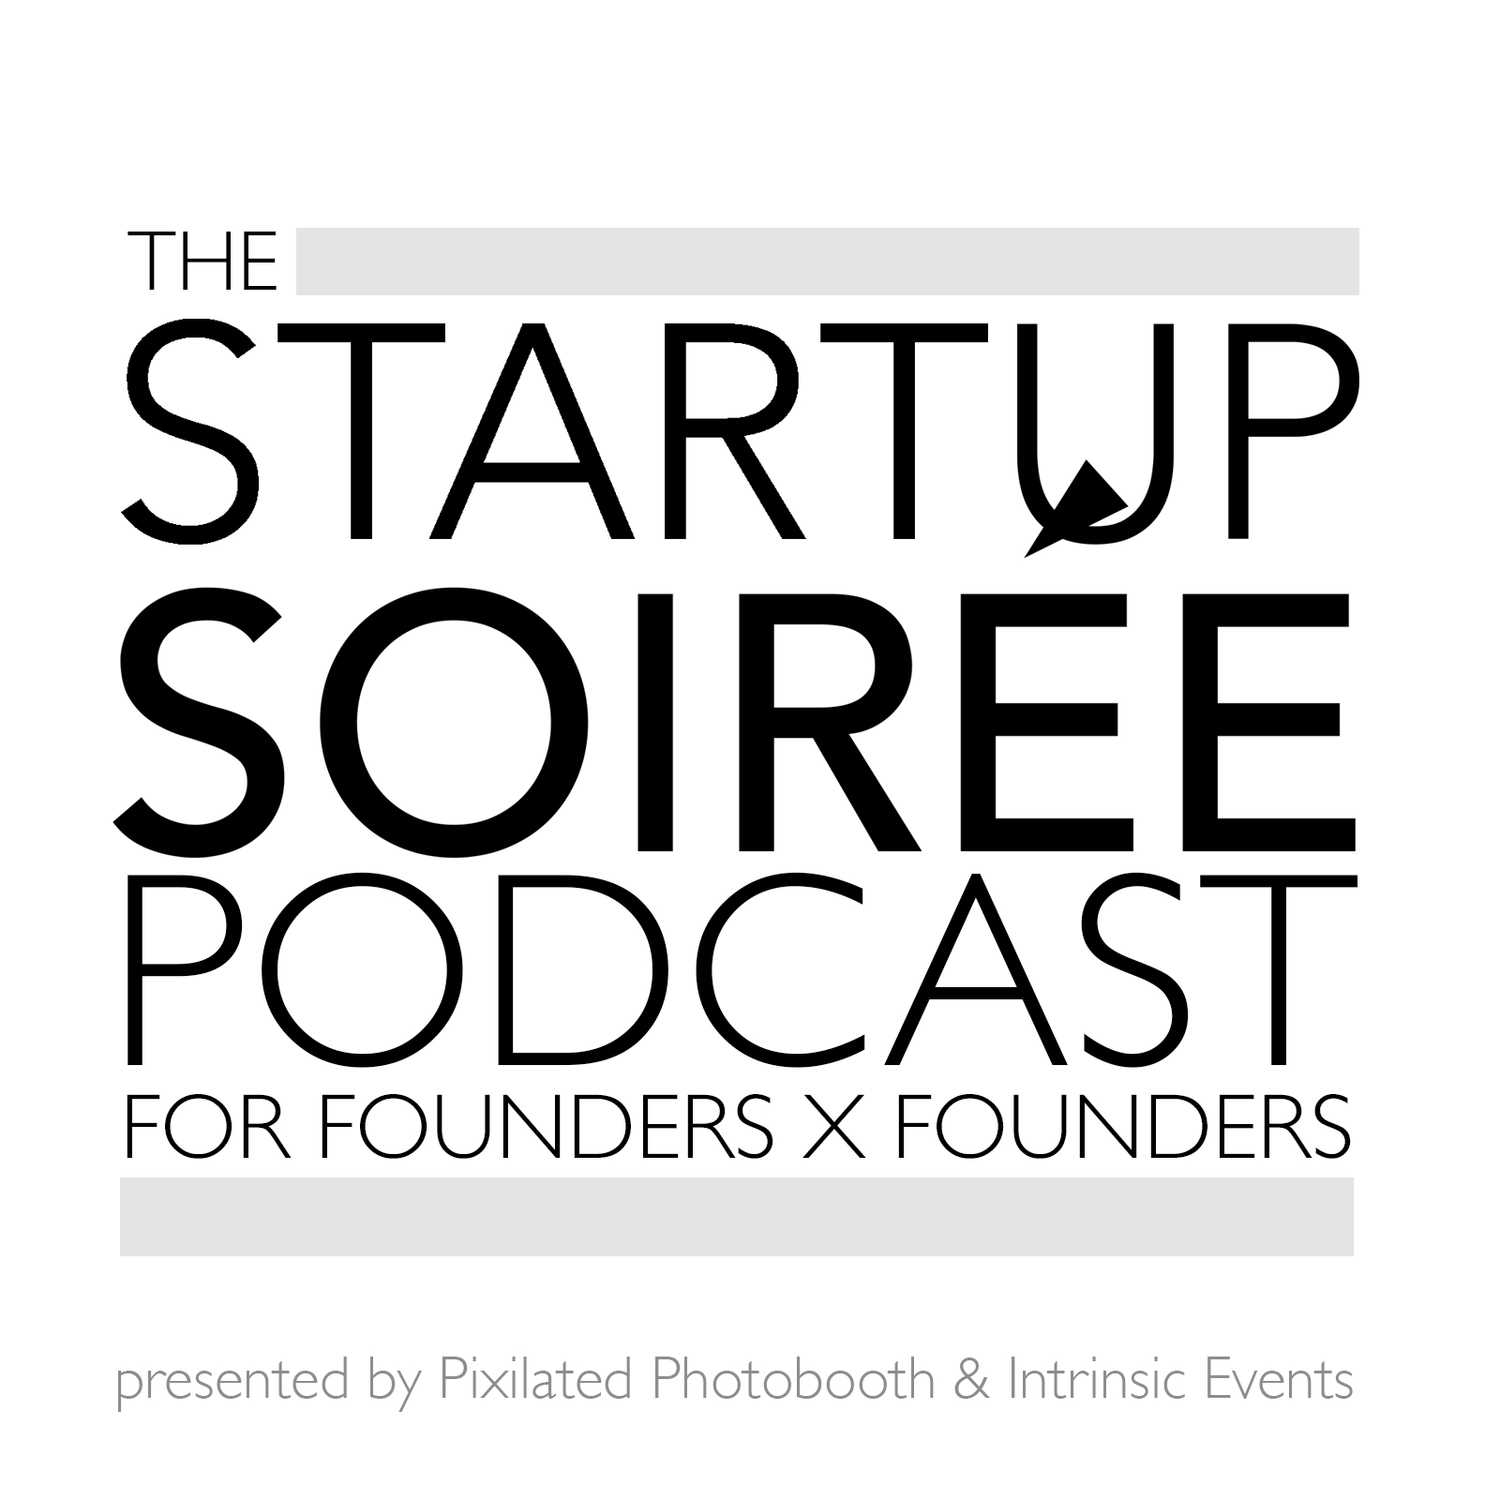 The Startup Soiree Podcast - Startup Soiree